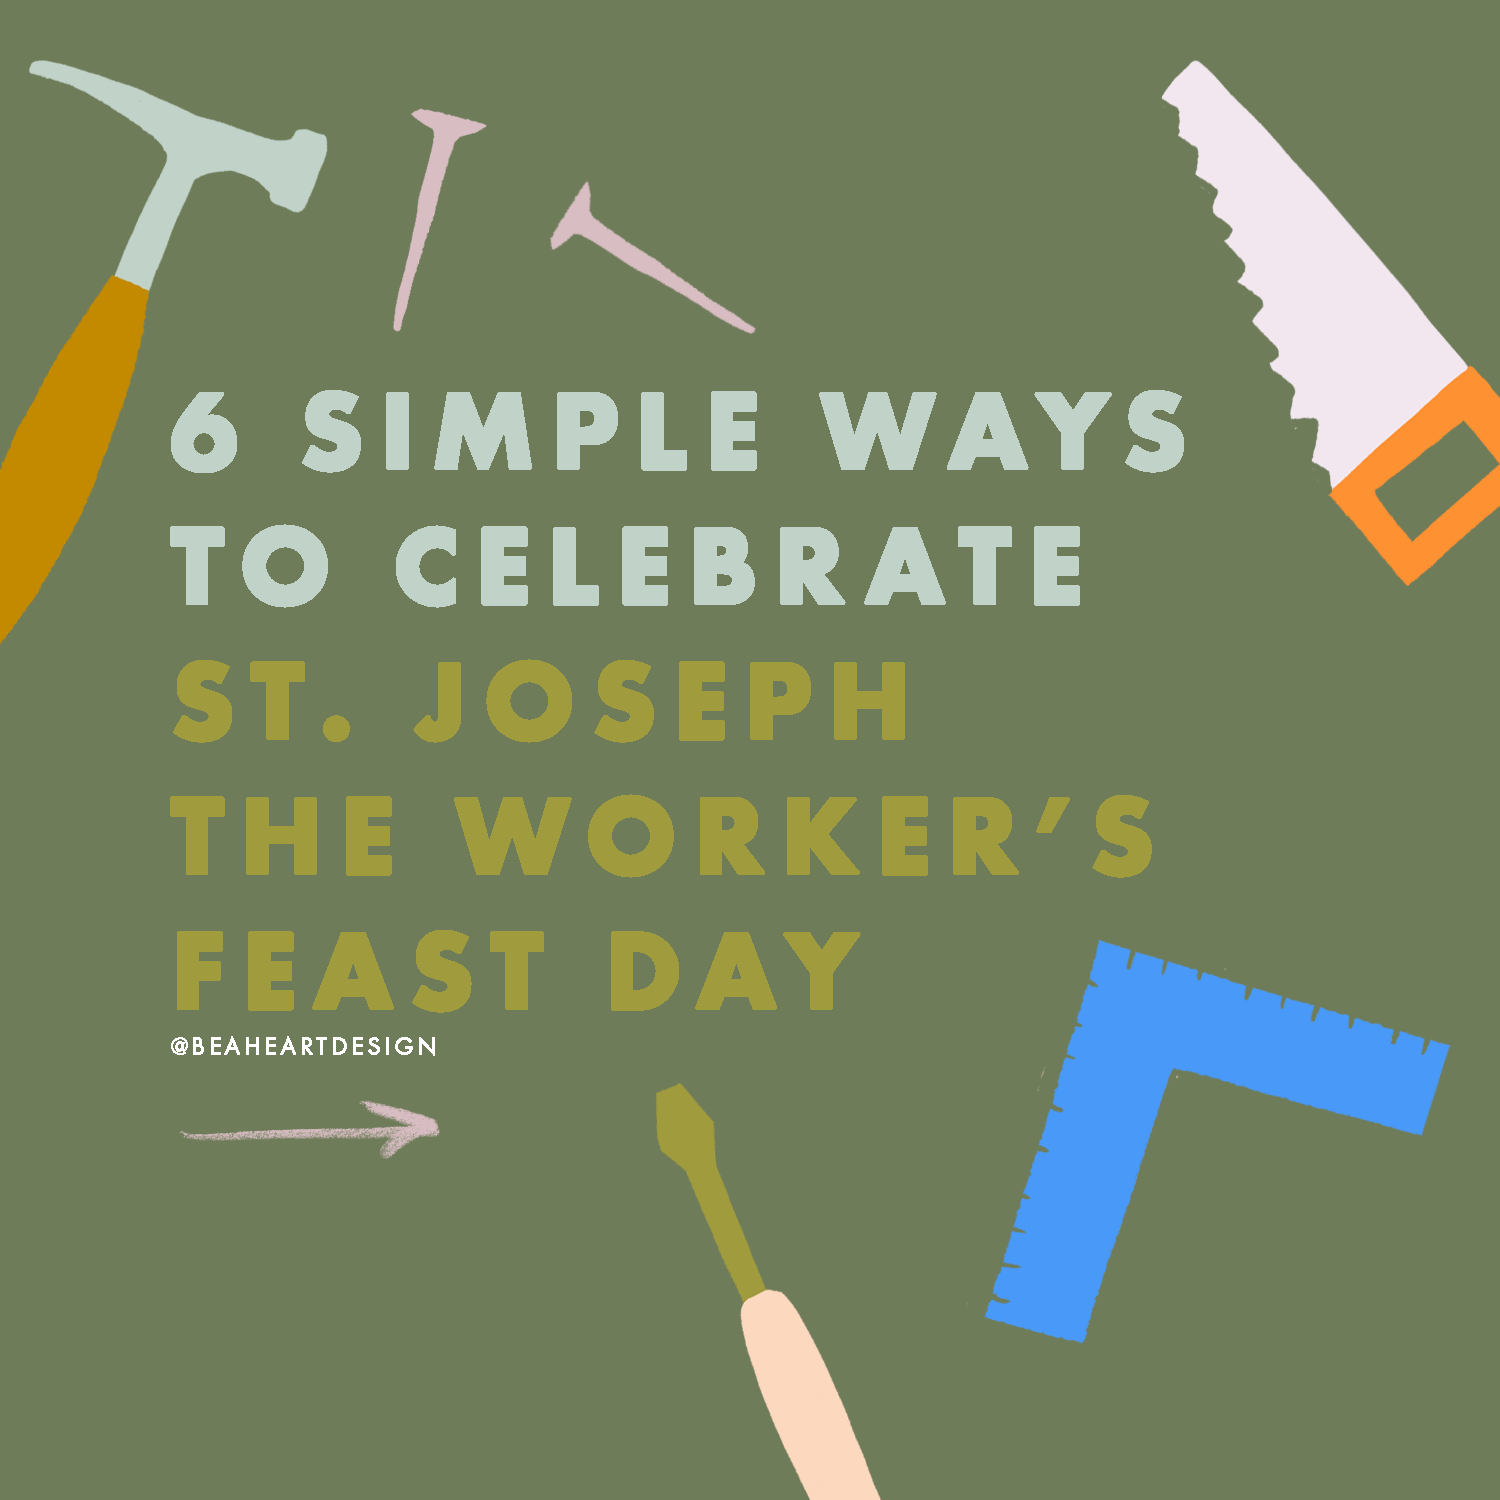 6 Simple Ways to Celebrate the Feast Day of St. Joseph The Worker